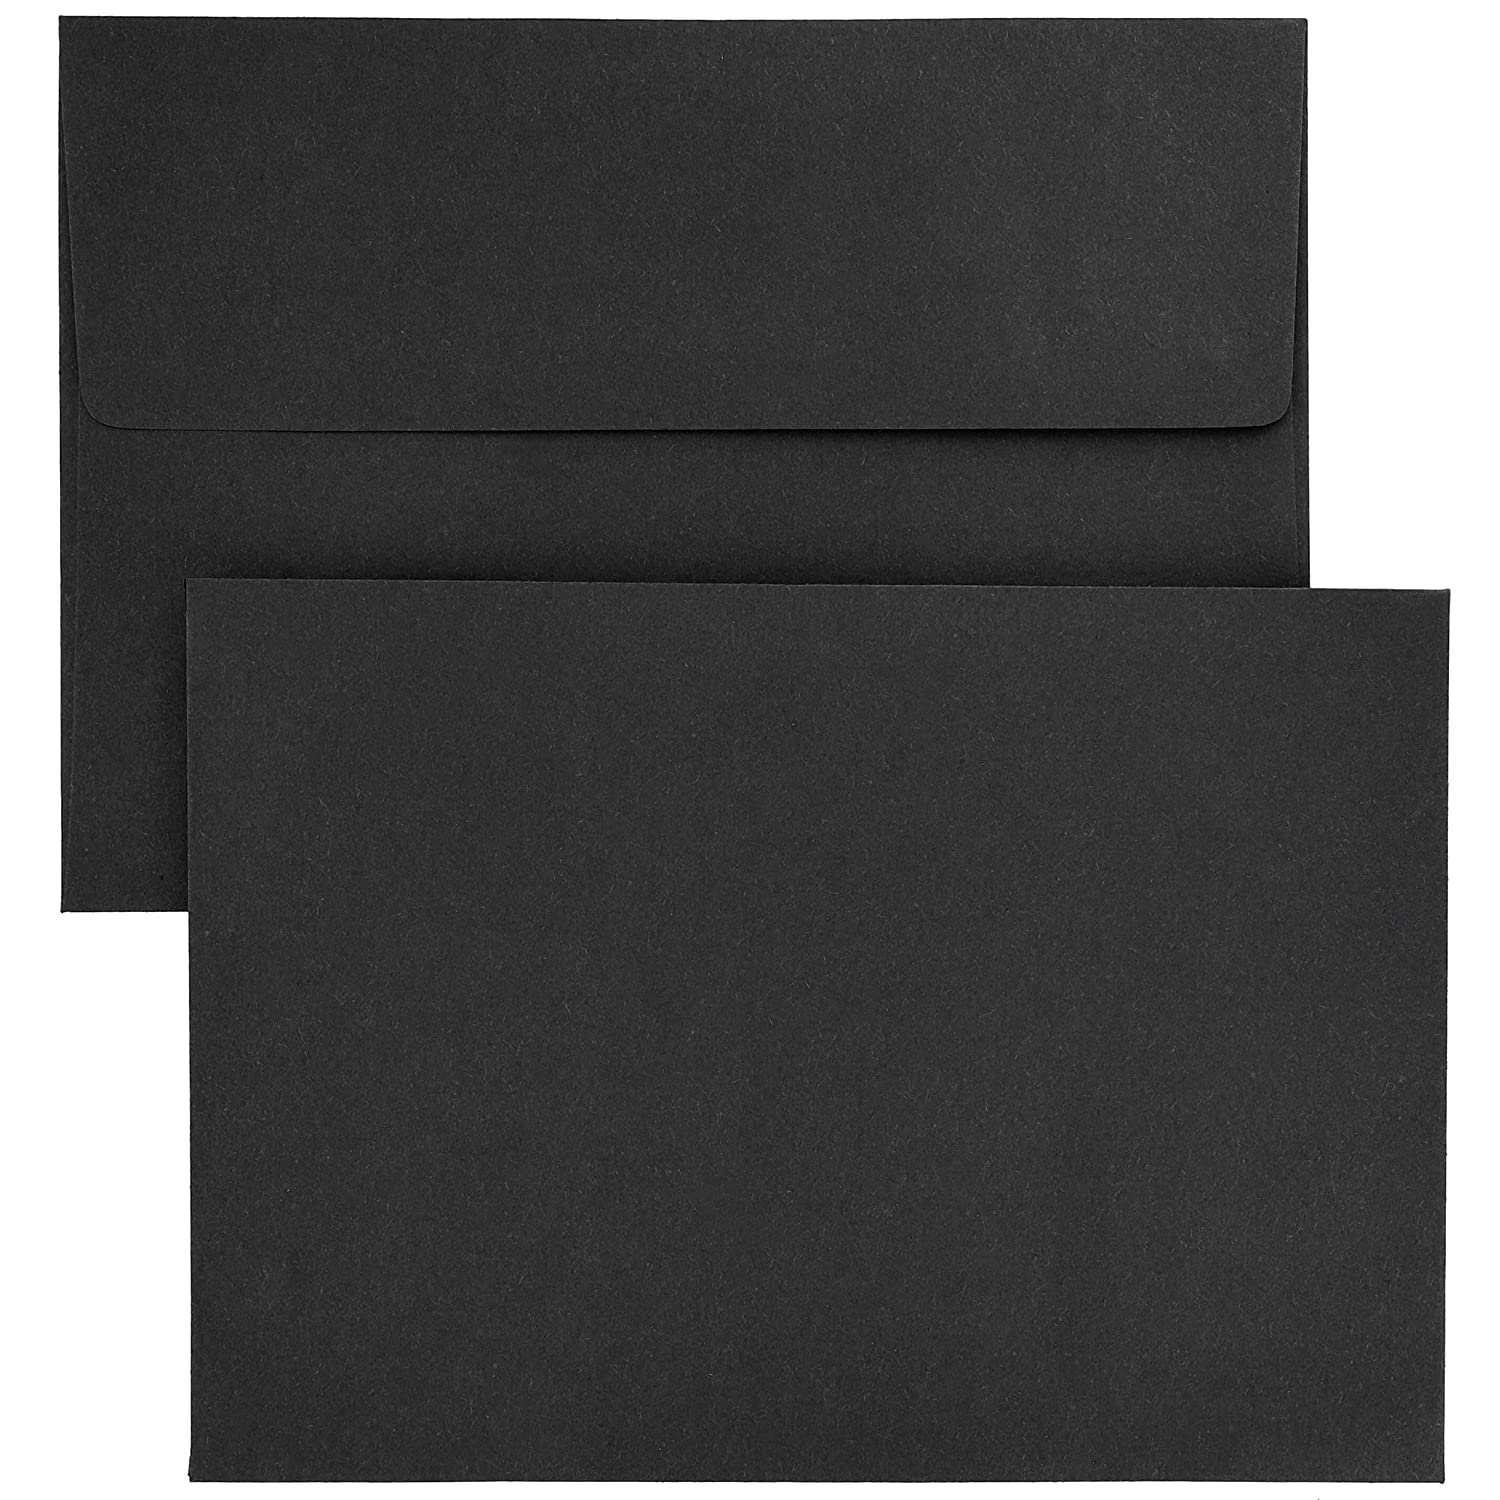 25 RED BANKERS SQUARE ENVELOPES 120gsm 160 x 160mms INVITATIONS WEDDINGS 6.25/""